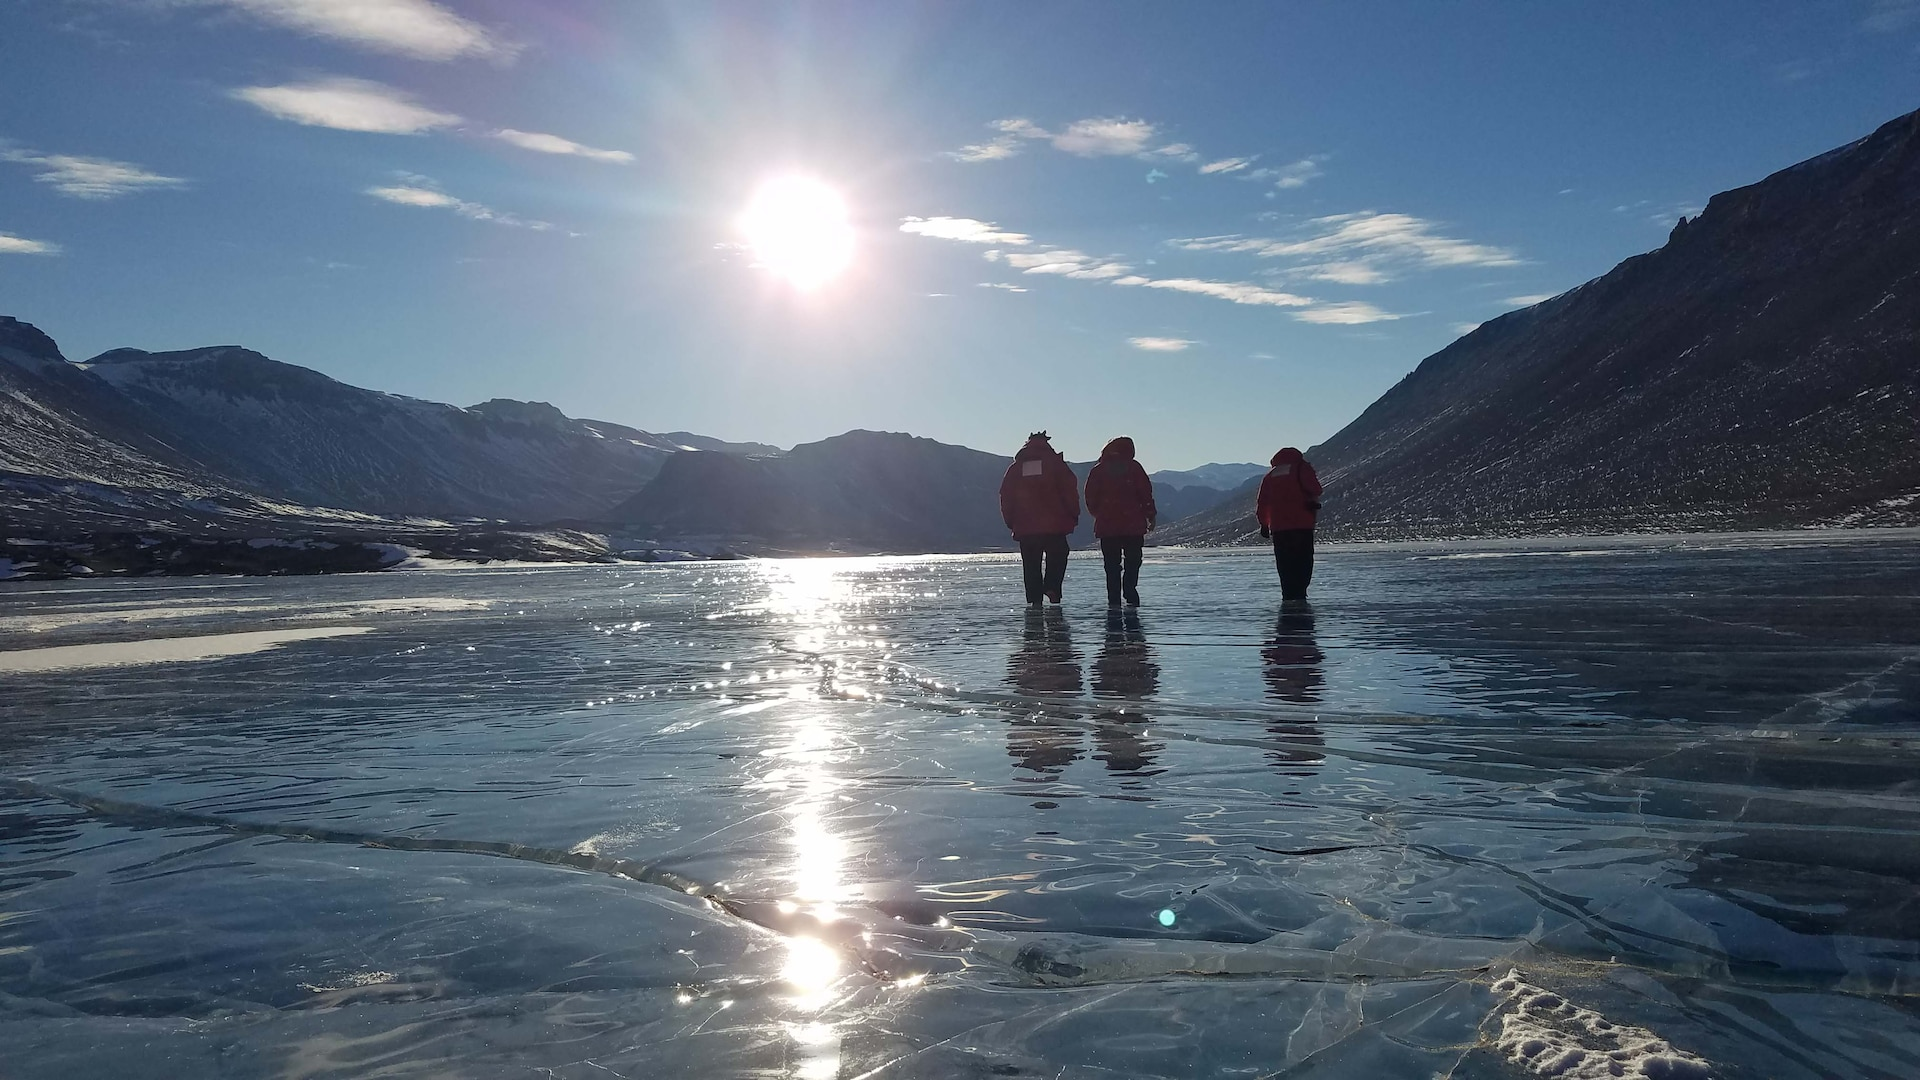 Airmen from the Air Force Technical Applications Center, Patrick AFB, Fla., walk on a frozen lake in Antarctica after a full day of performing maintenance on the center's seismic equipment near Bull Pass.  The photo, taken at about 10 p.m., illustrates the 24-hour daylight cycle at Earth's southernmost point.  Pictured from left to right:  Staff. Sgt. Jeremy Hannah, Senior Airman Andrew Pouncy and Staff Sgt. Justin Sherman.  (U.S. Air Force photo by Senior Airman Richard Westra)